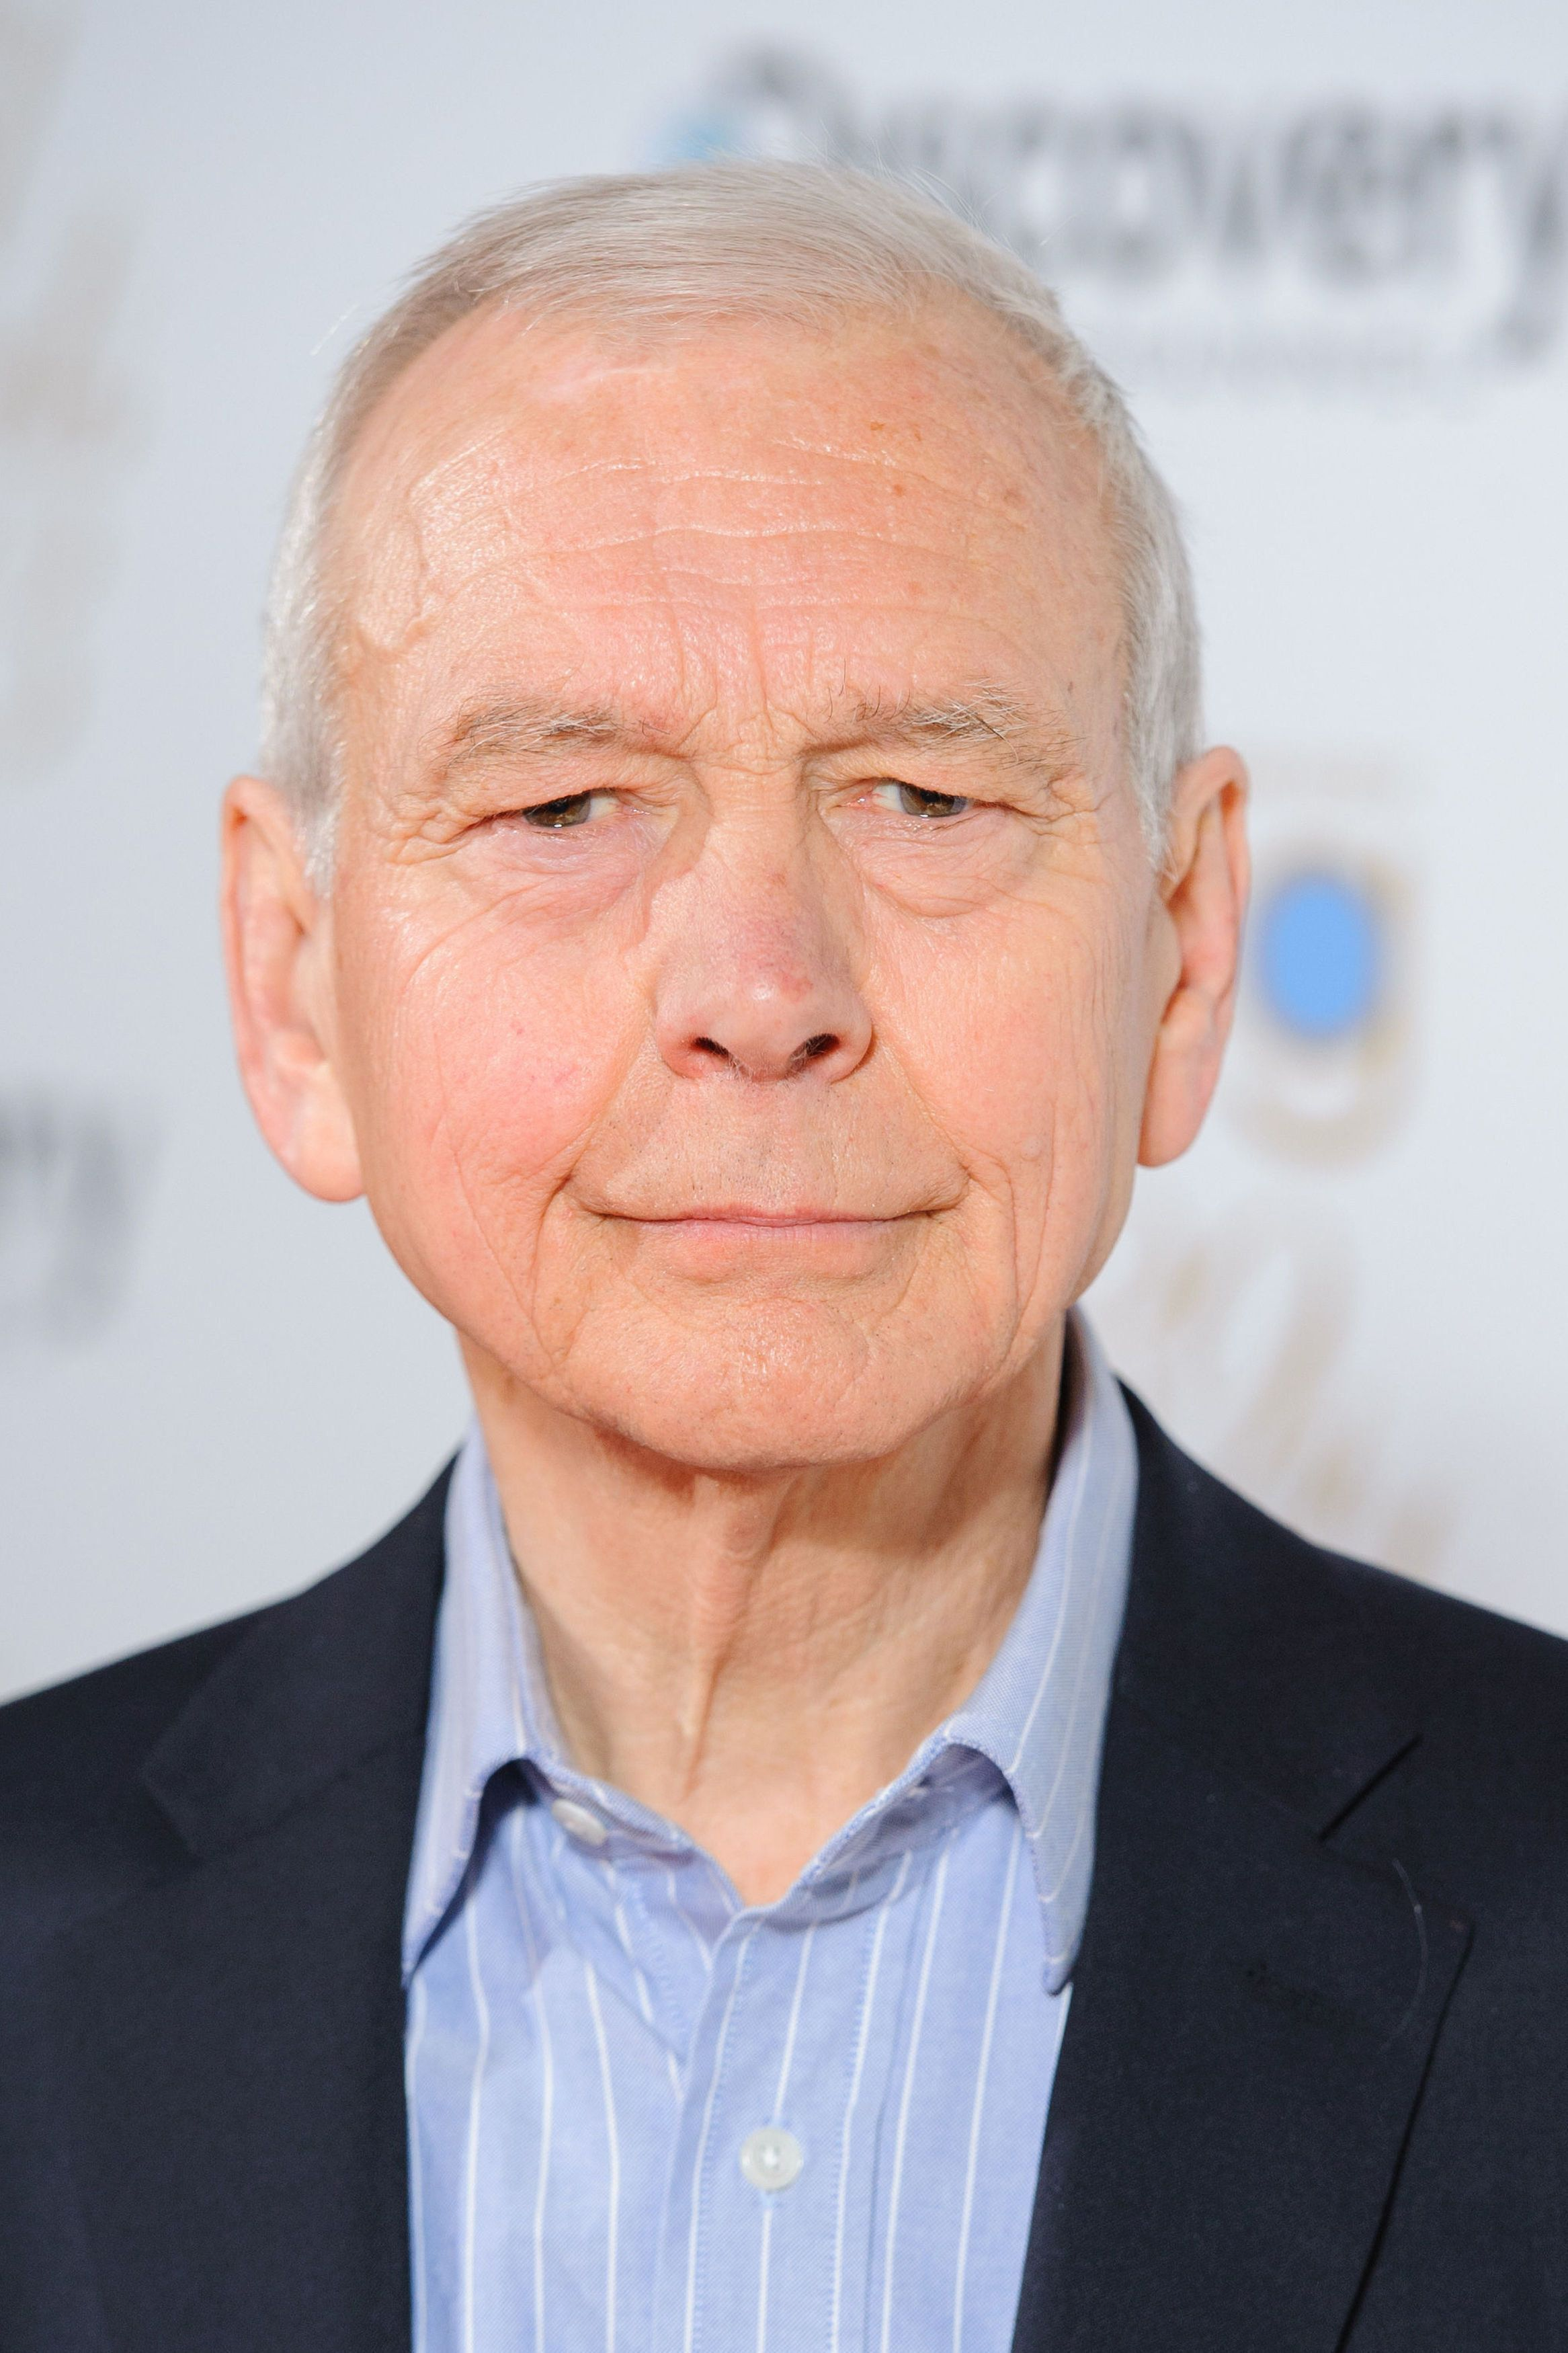 John Humphrys Condemns 'Nasty Person' Who Leaked His Off-Air Joke About BBC Pay